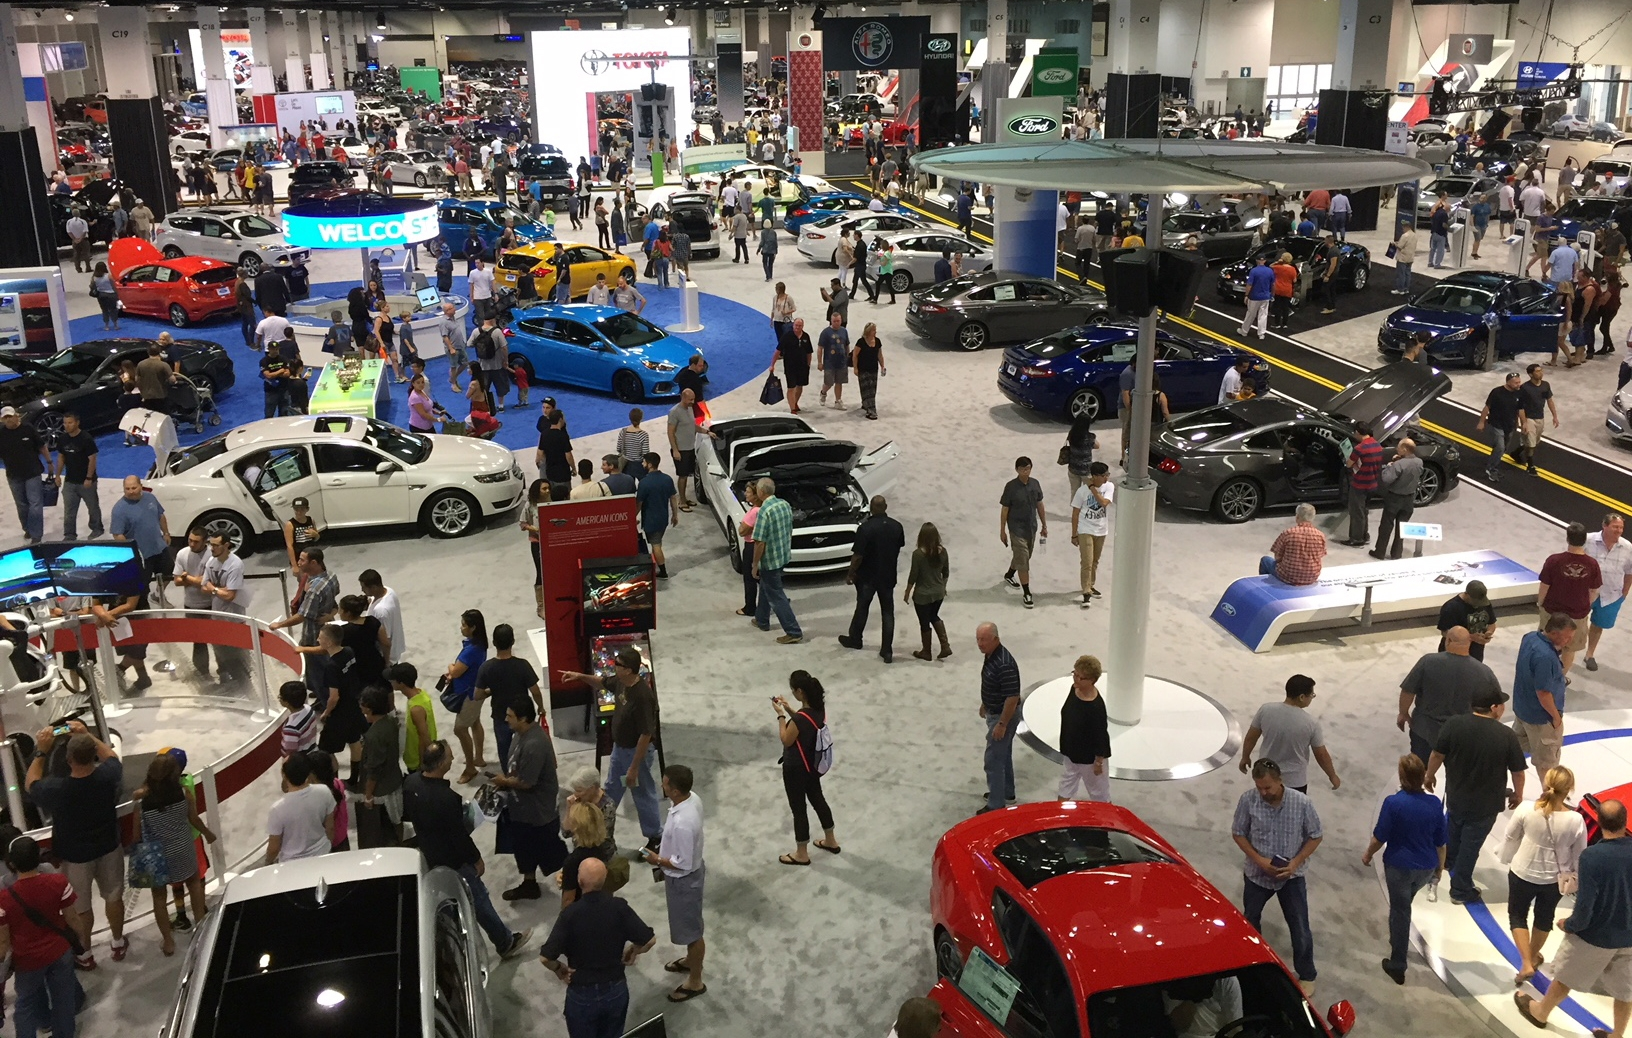 The OC Auto Show runs from Oct. 3-6 at the Anaheim Convention Center.